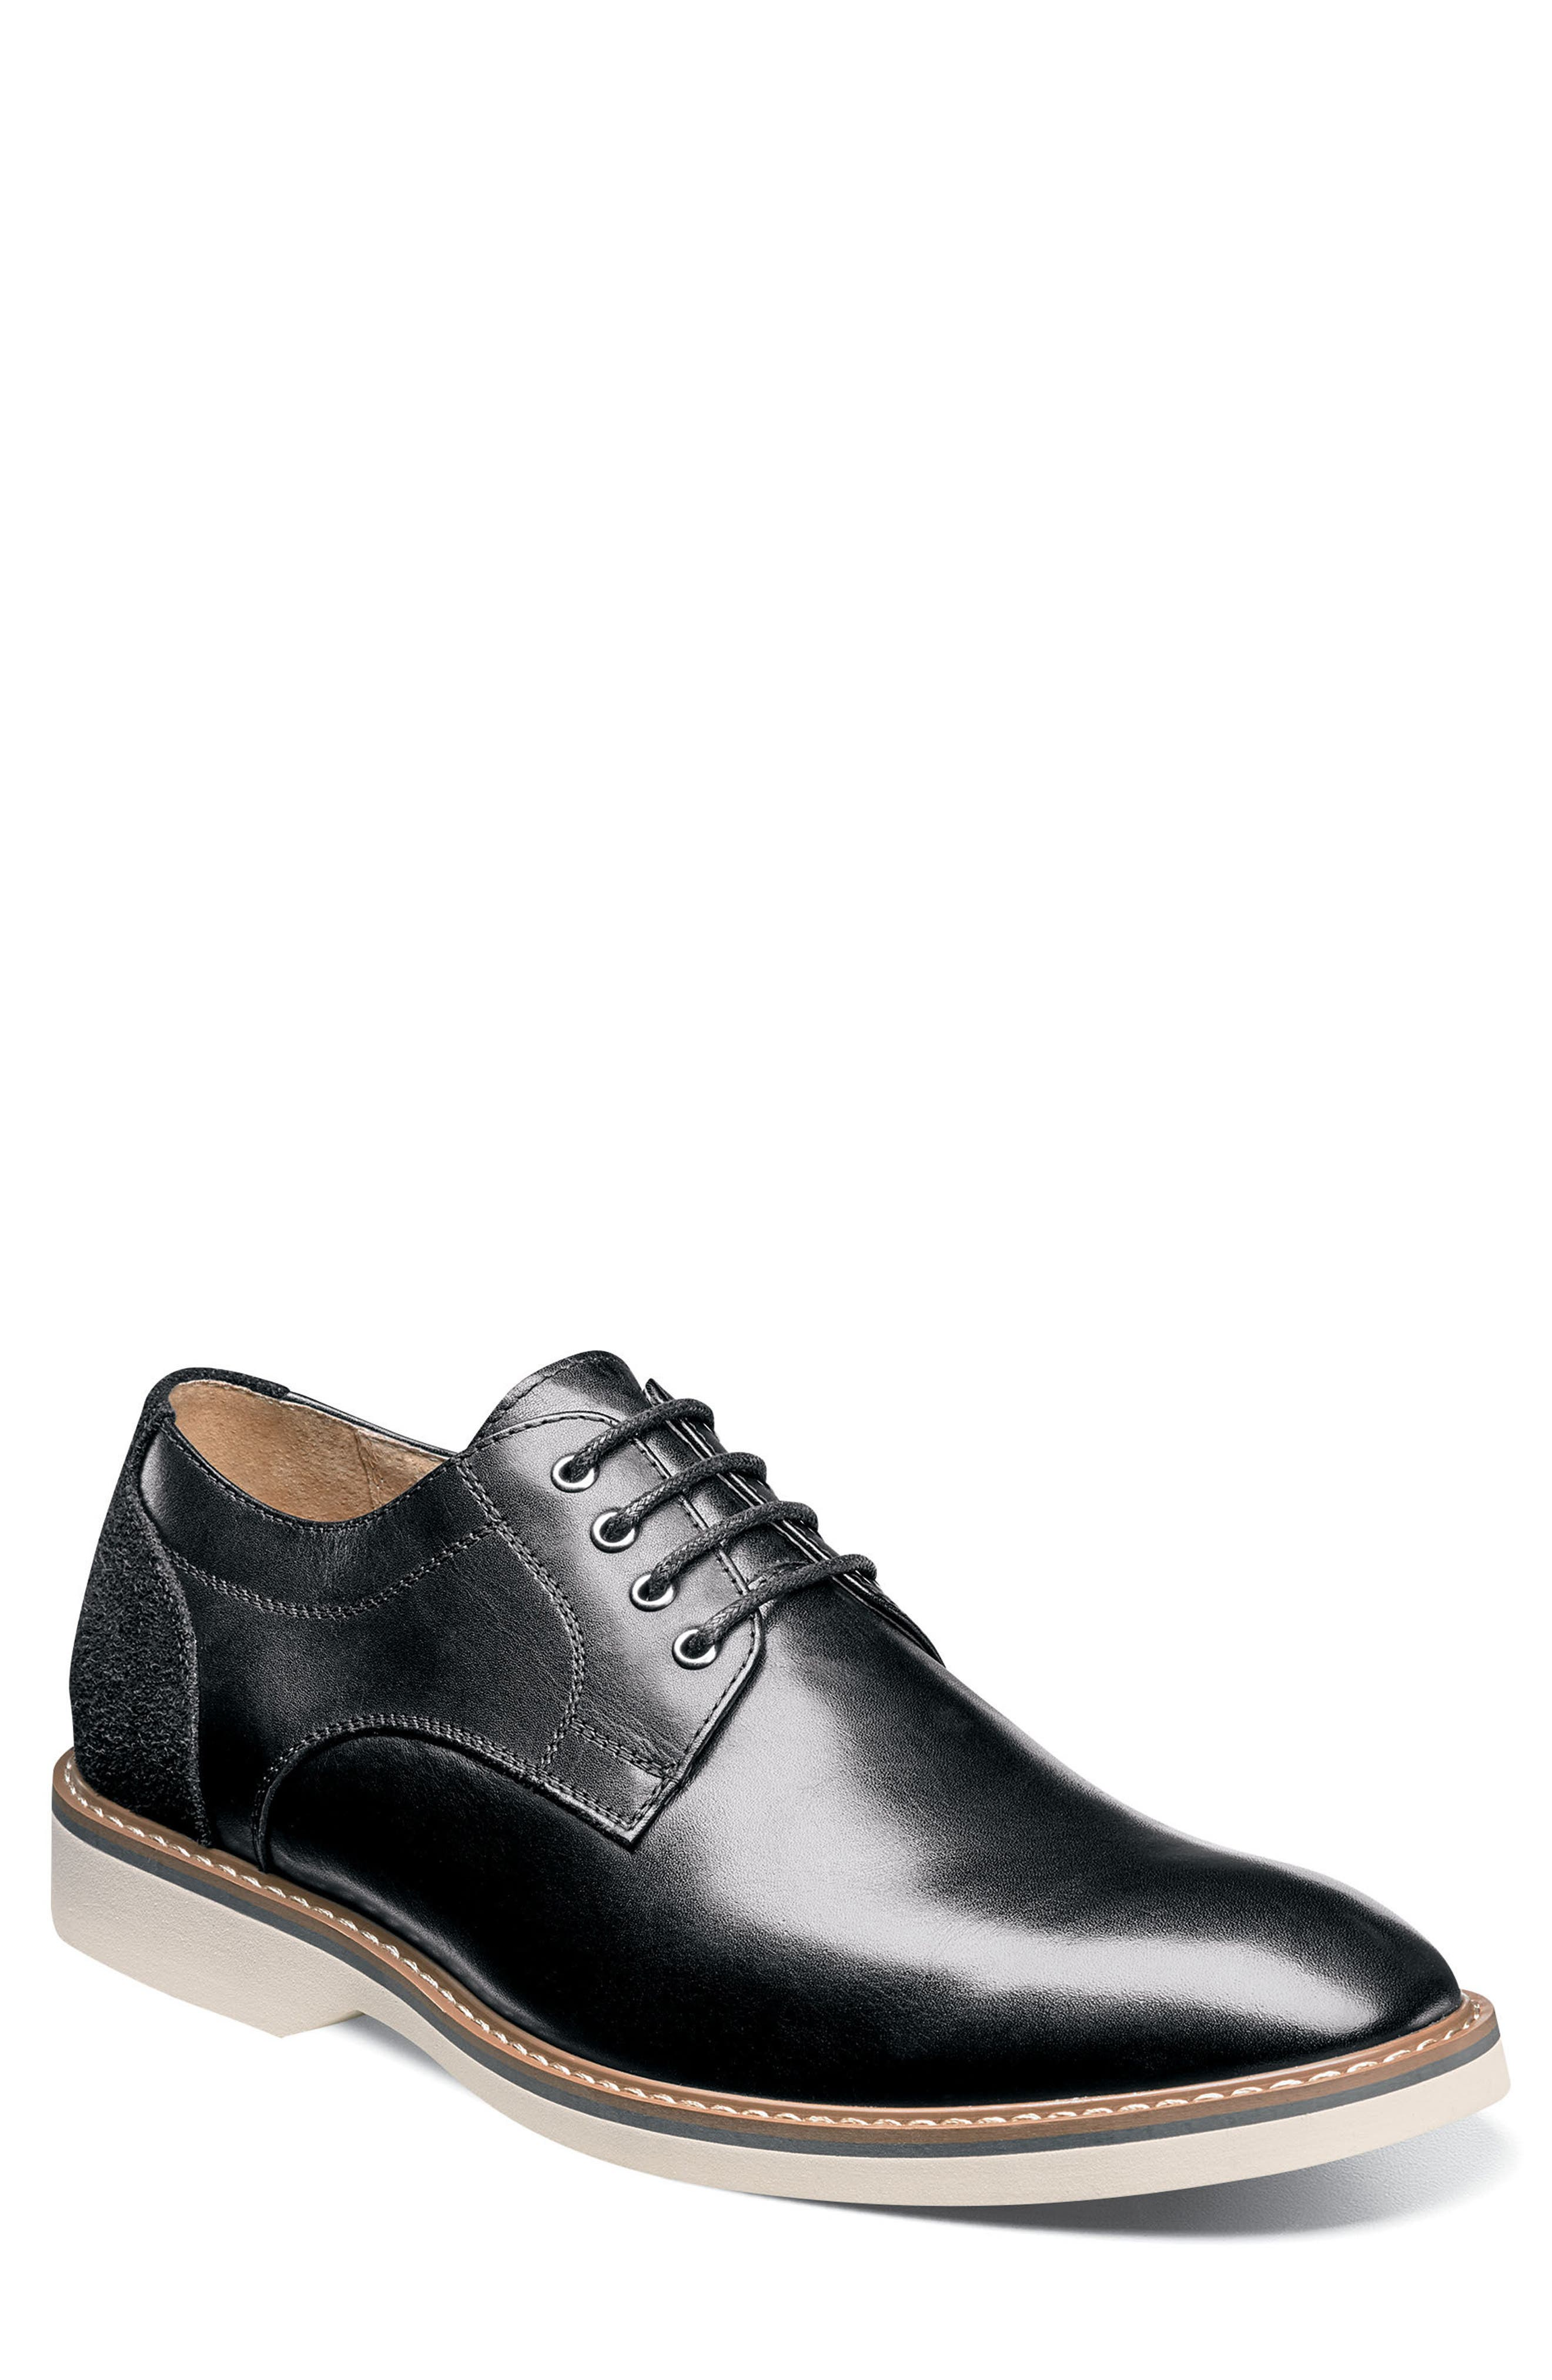 Union Buck Shoe,                         Main,                         color, 001